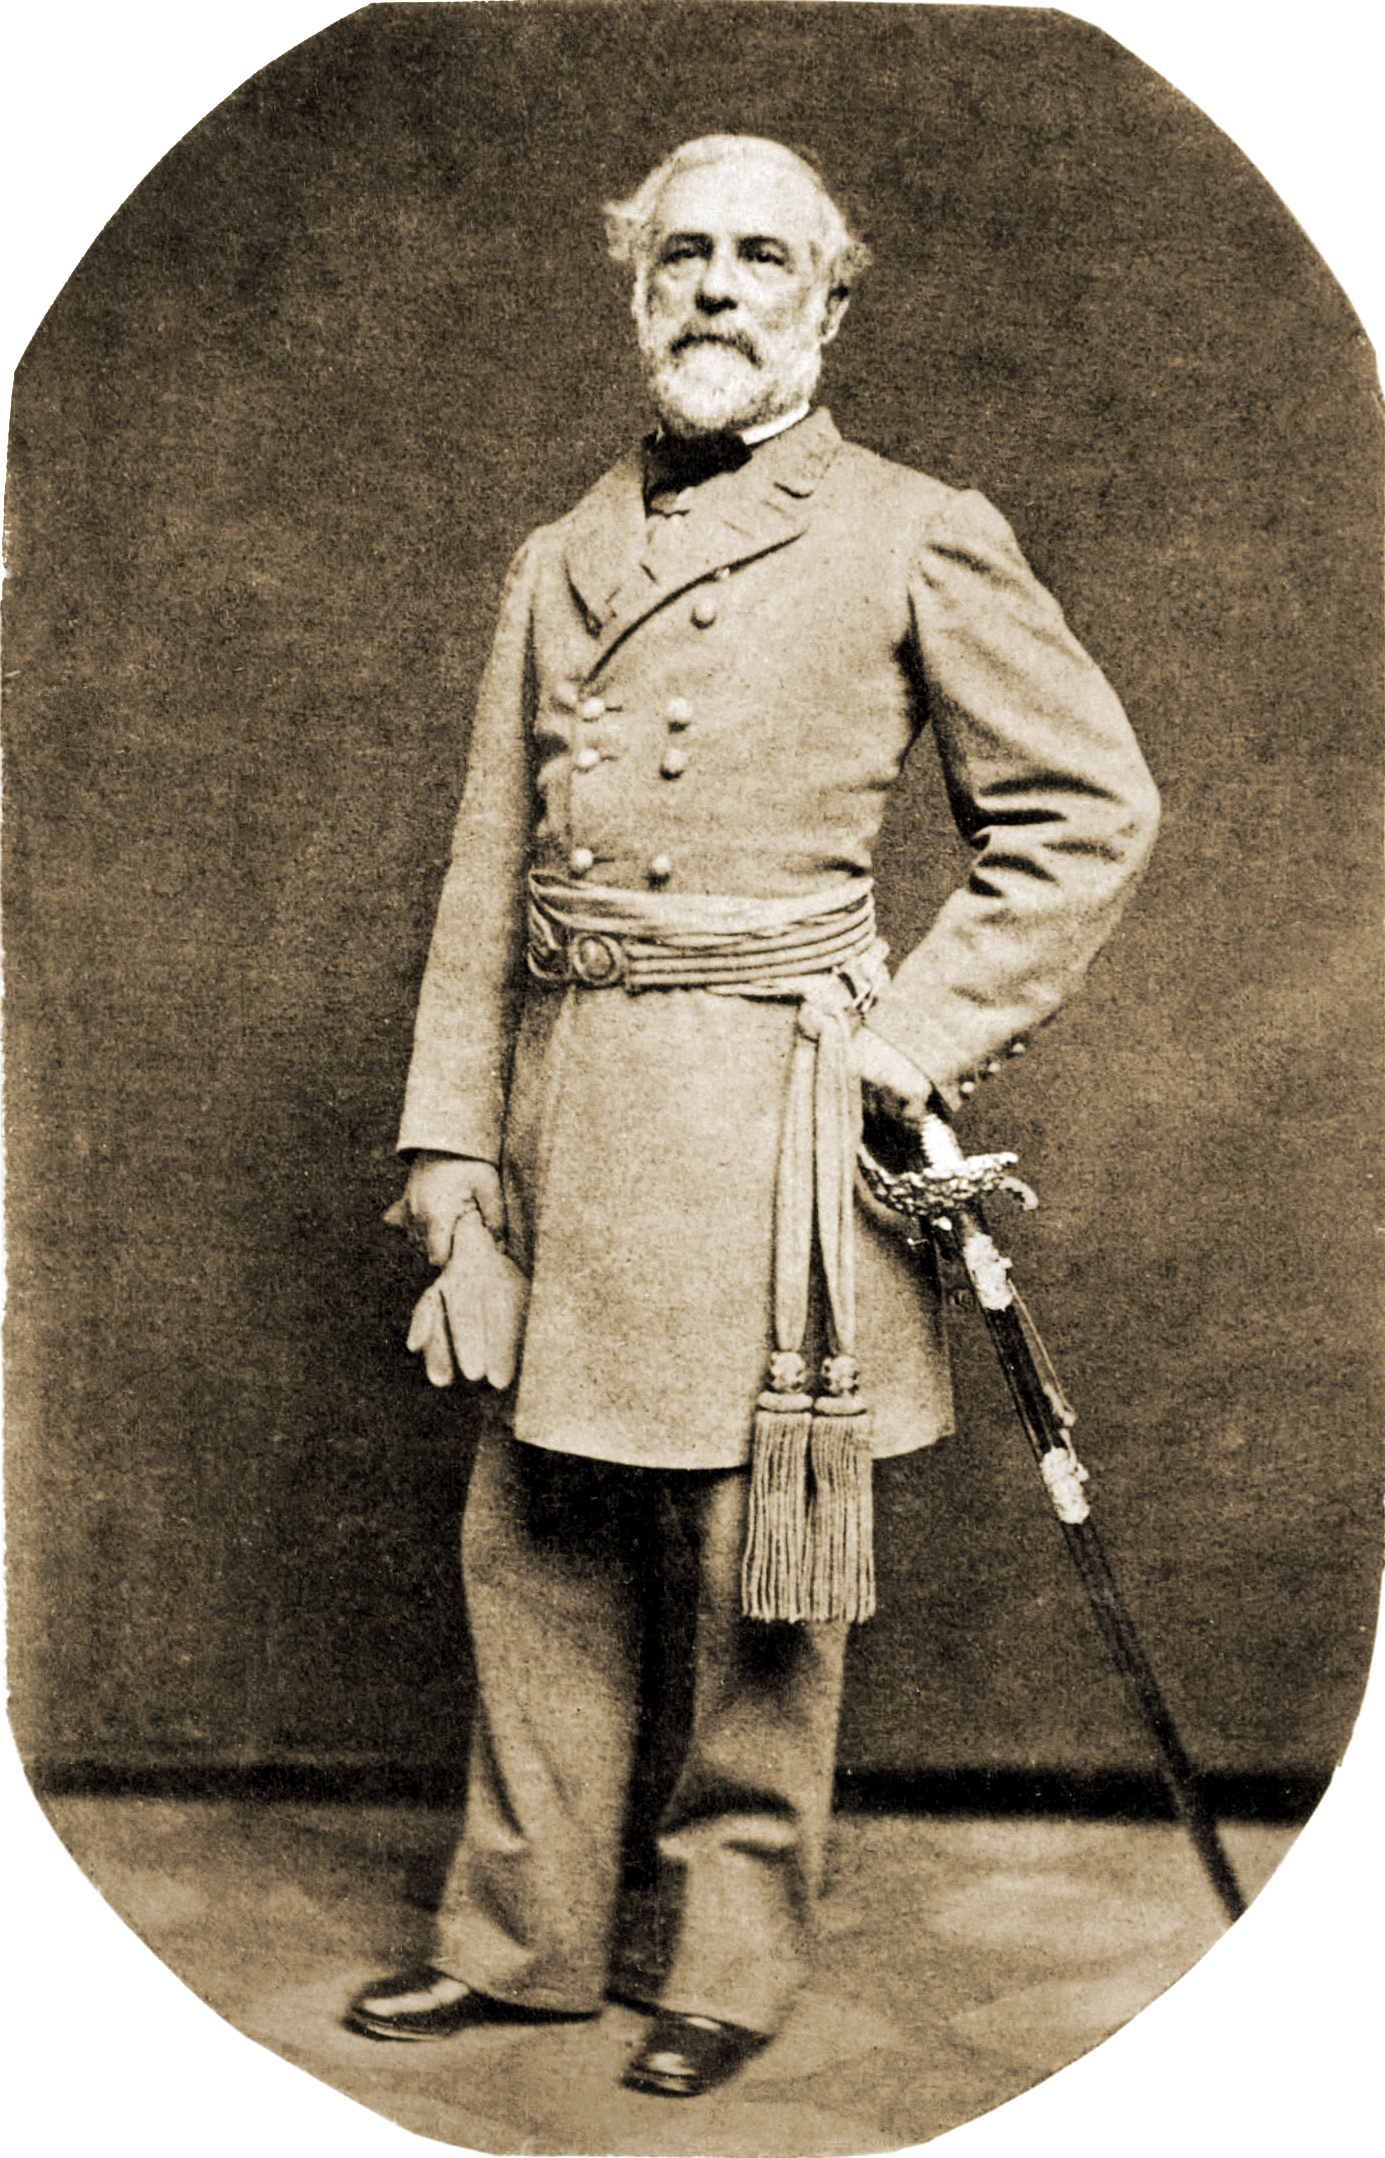 File:Robert E Lee in 1863.png.